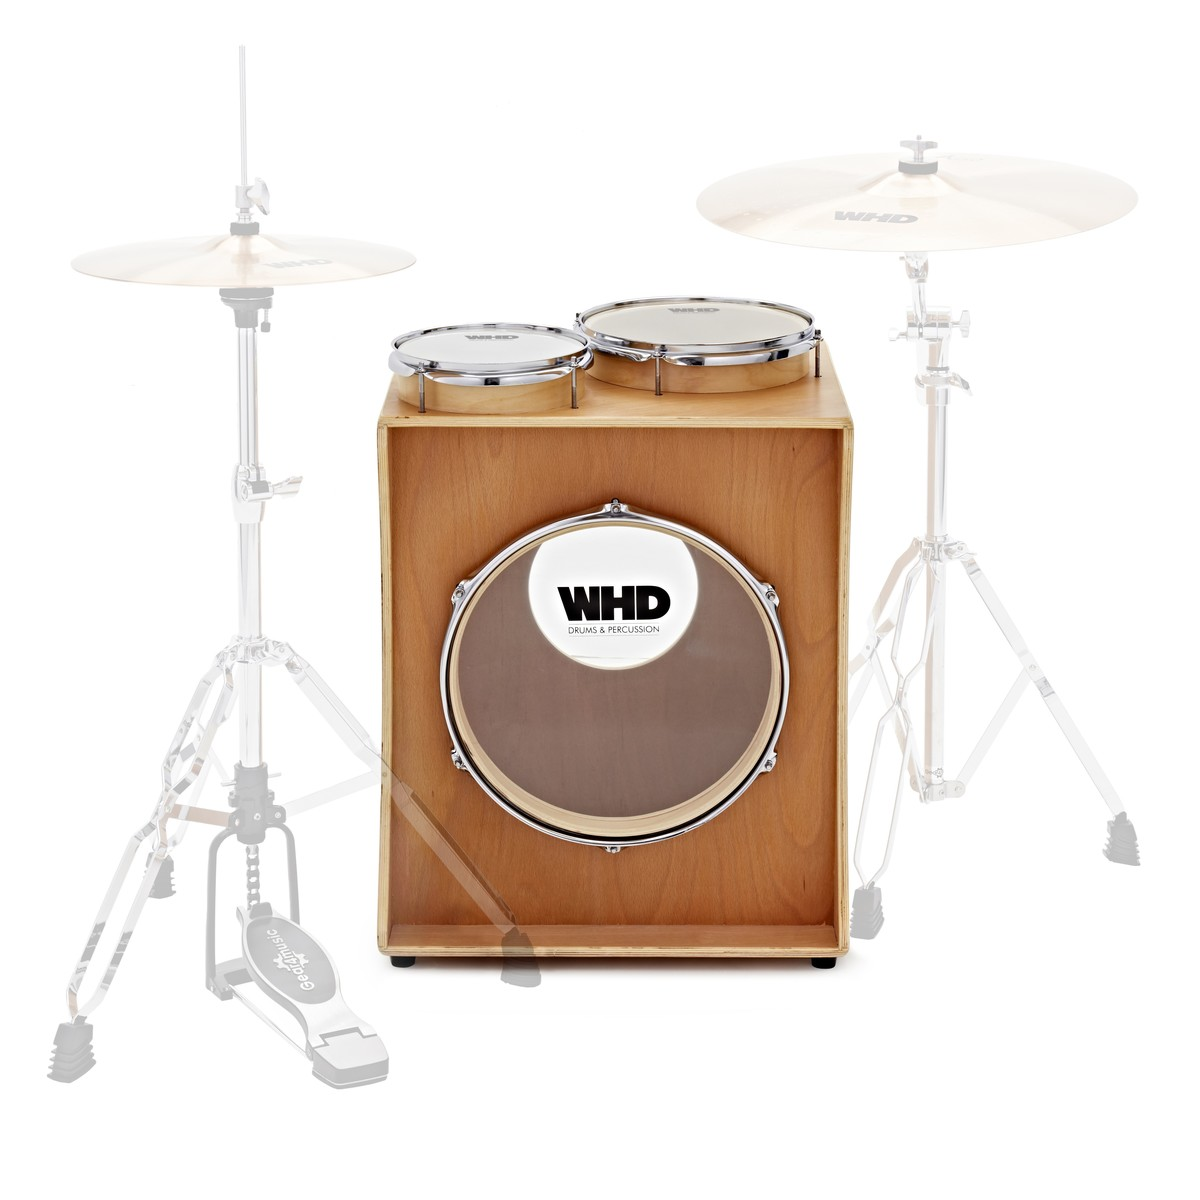 WHD Street Drum